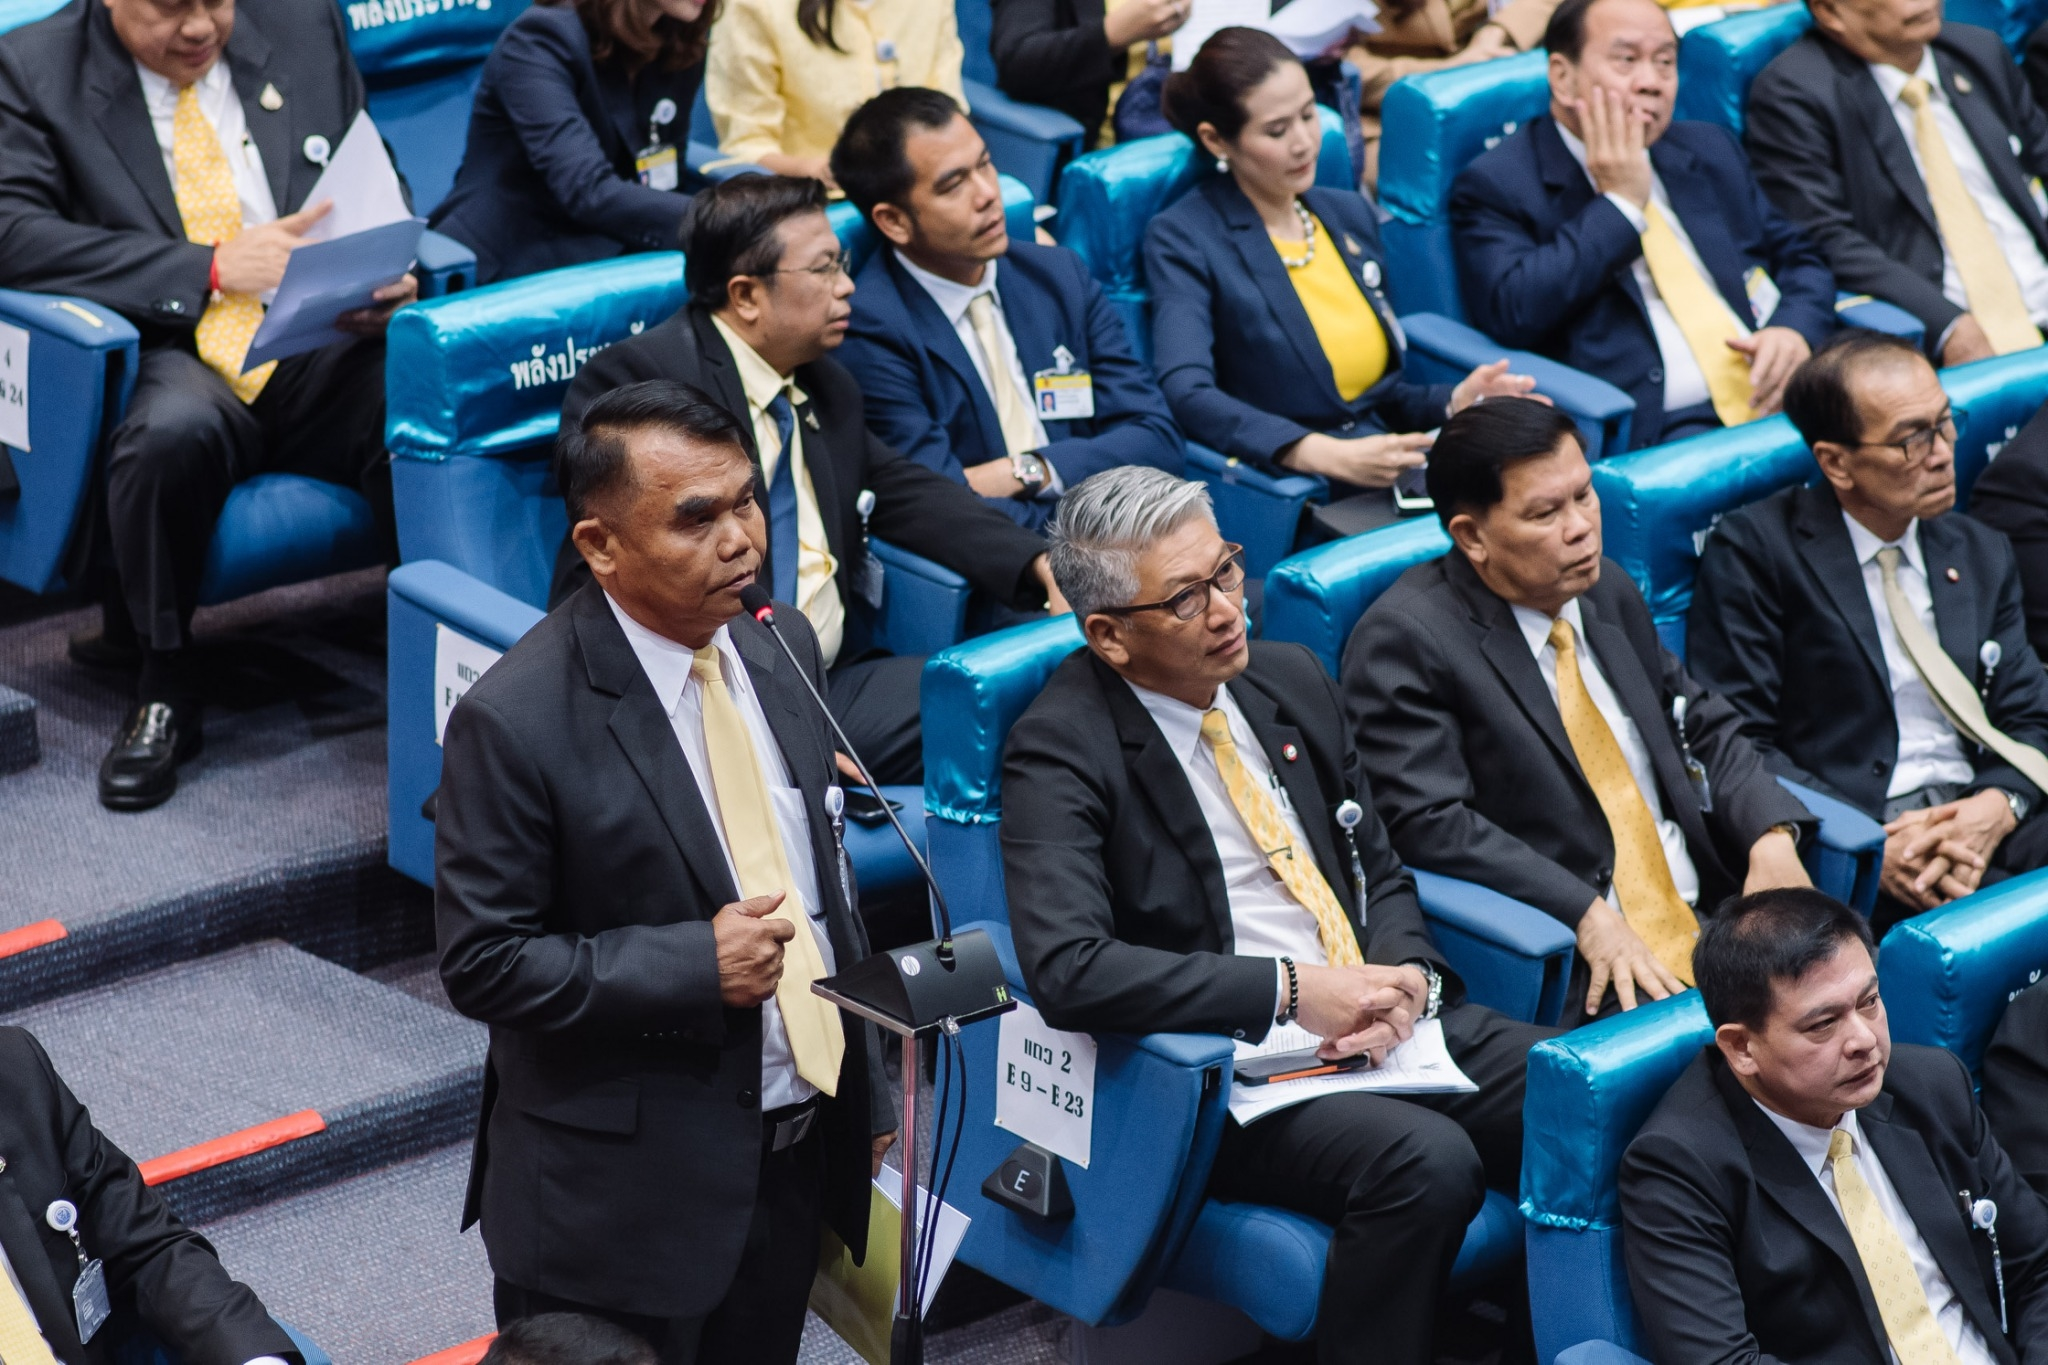 Parliamentary policy debate, 25-26 July 2019